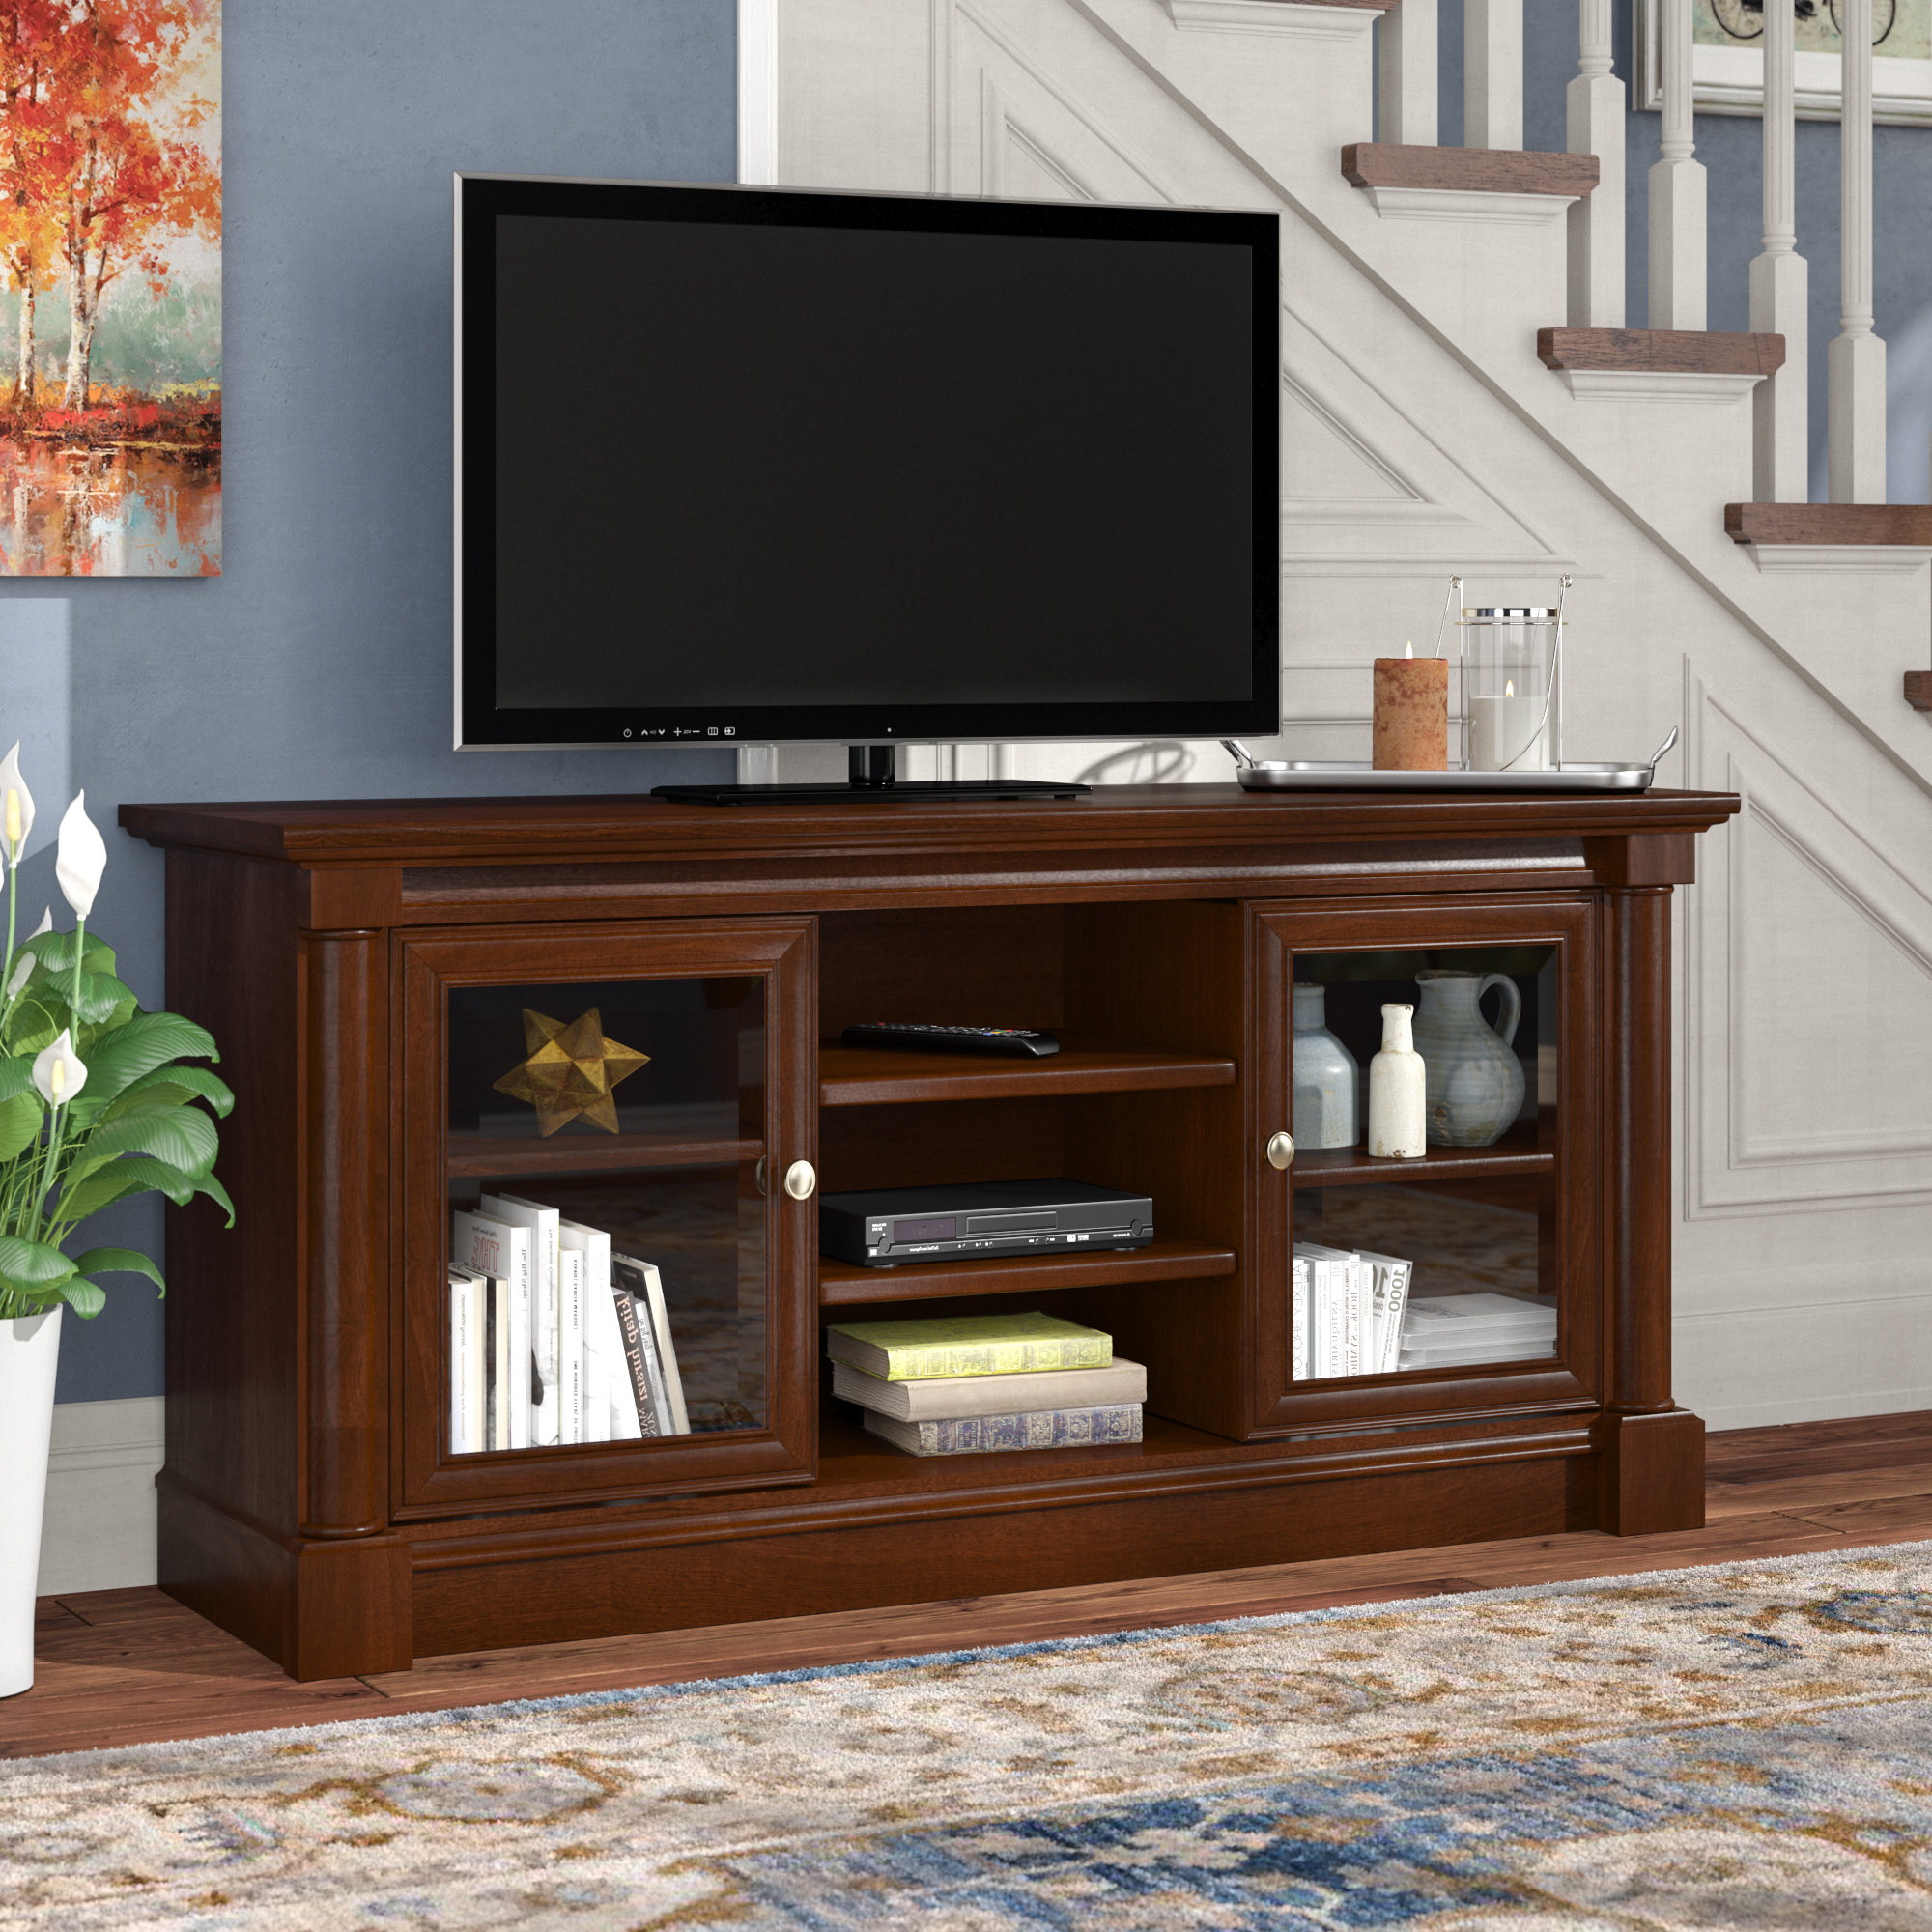 Famous 60 64 Inch Tv Stands (View 13 of 20)